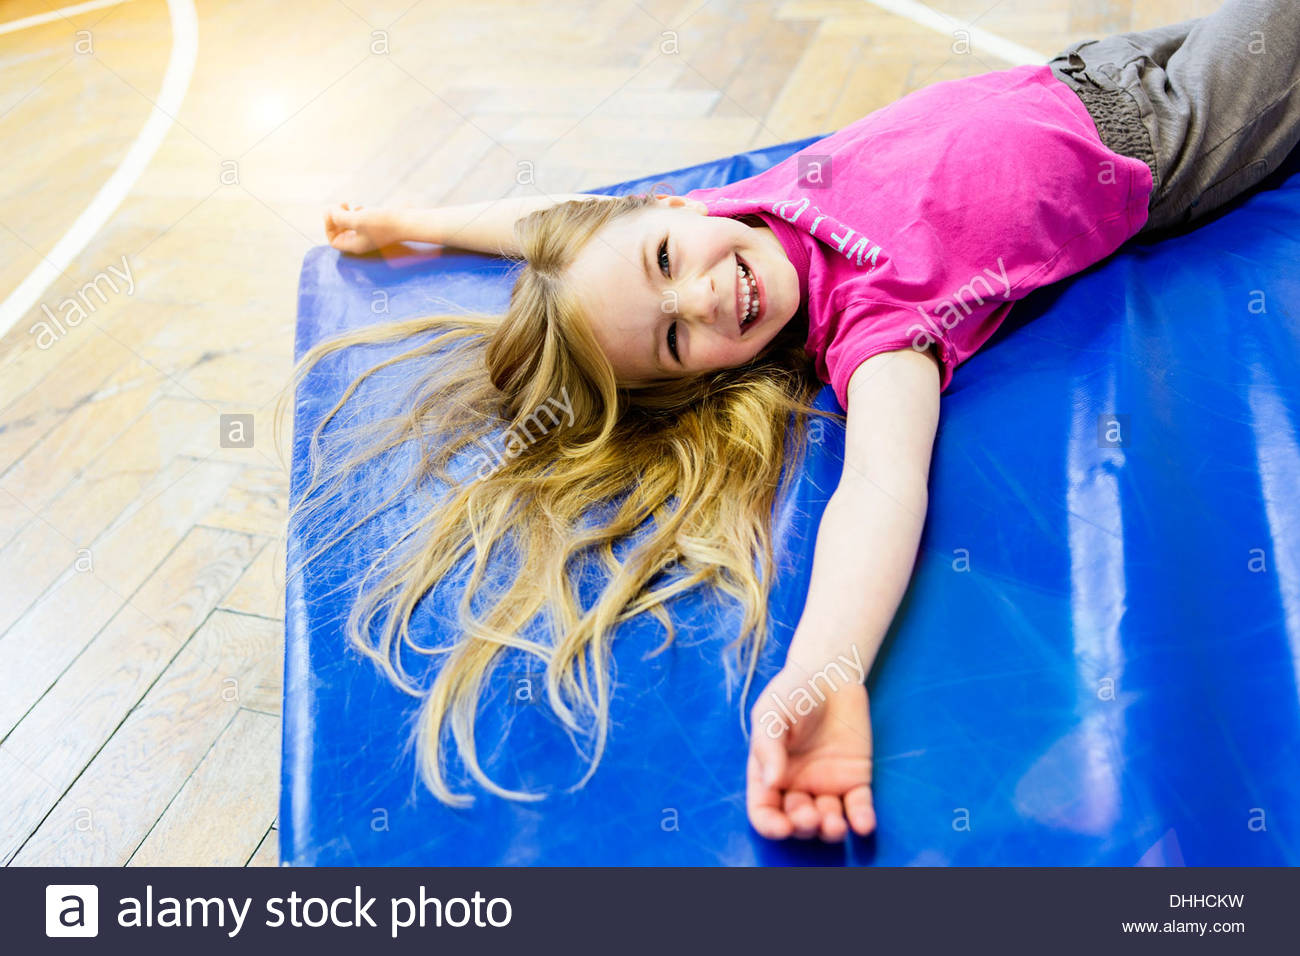 Girl lying on blue tapis d'exercice, smiling Photo Stock